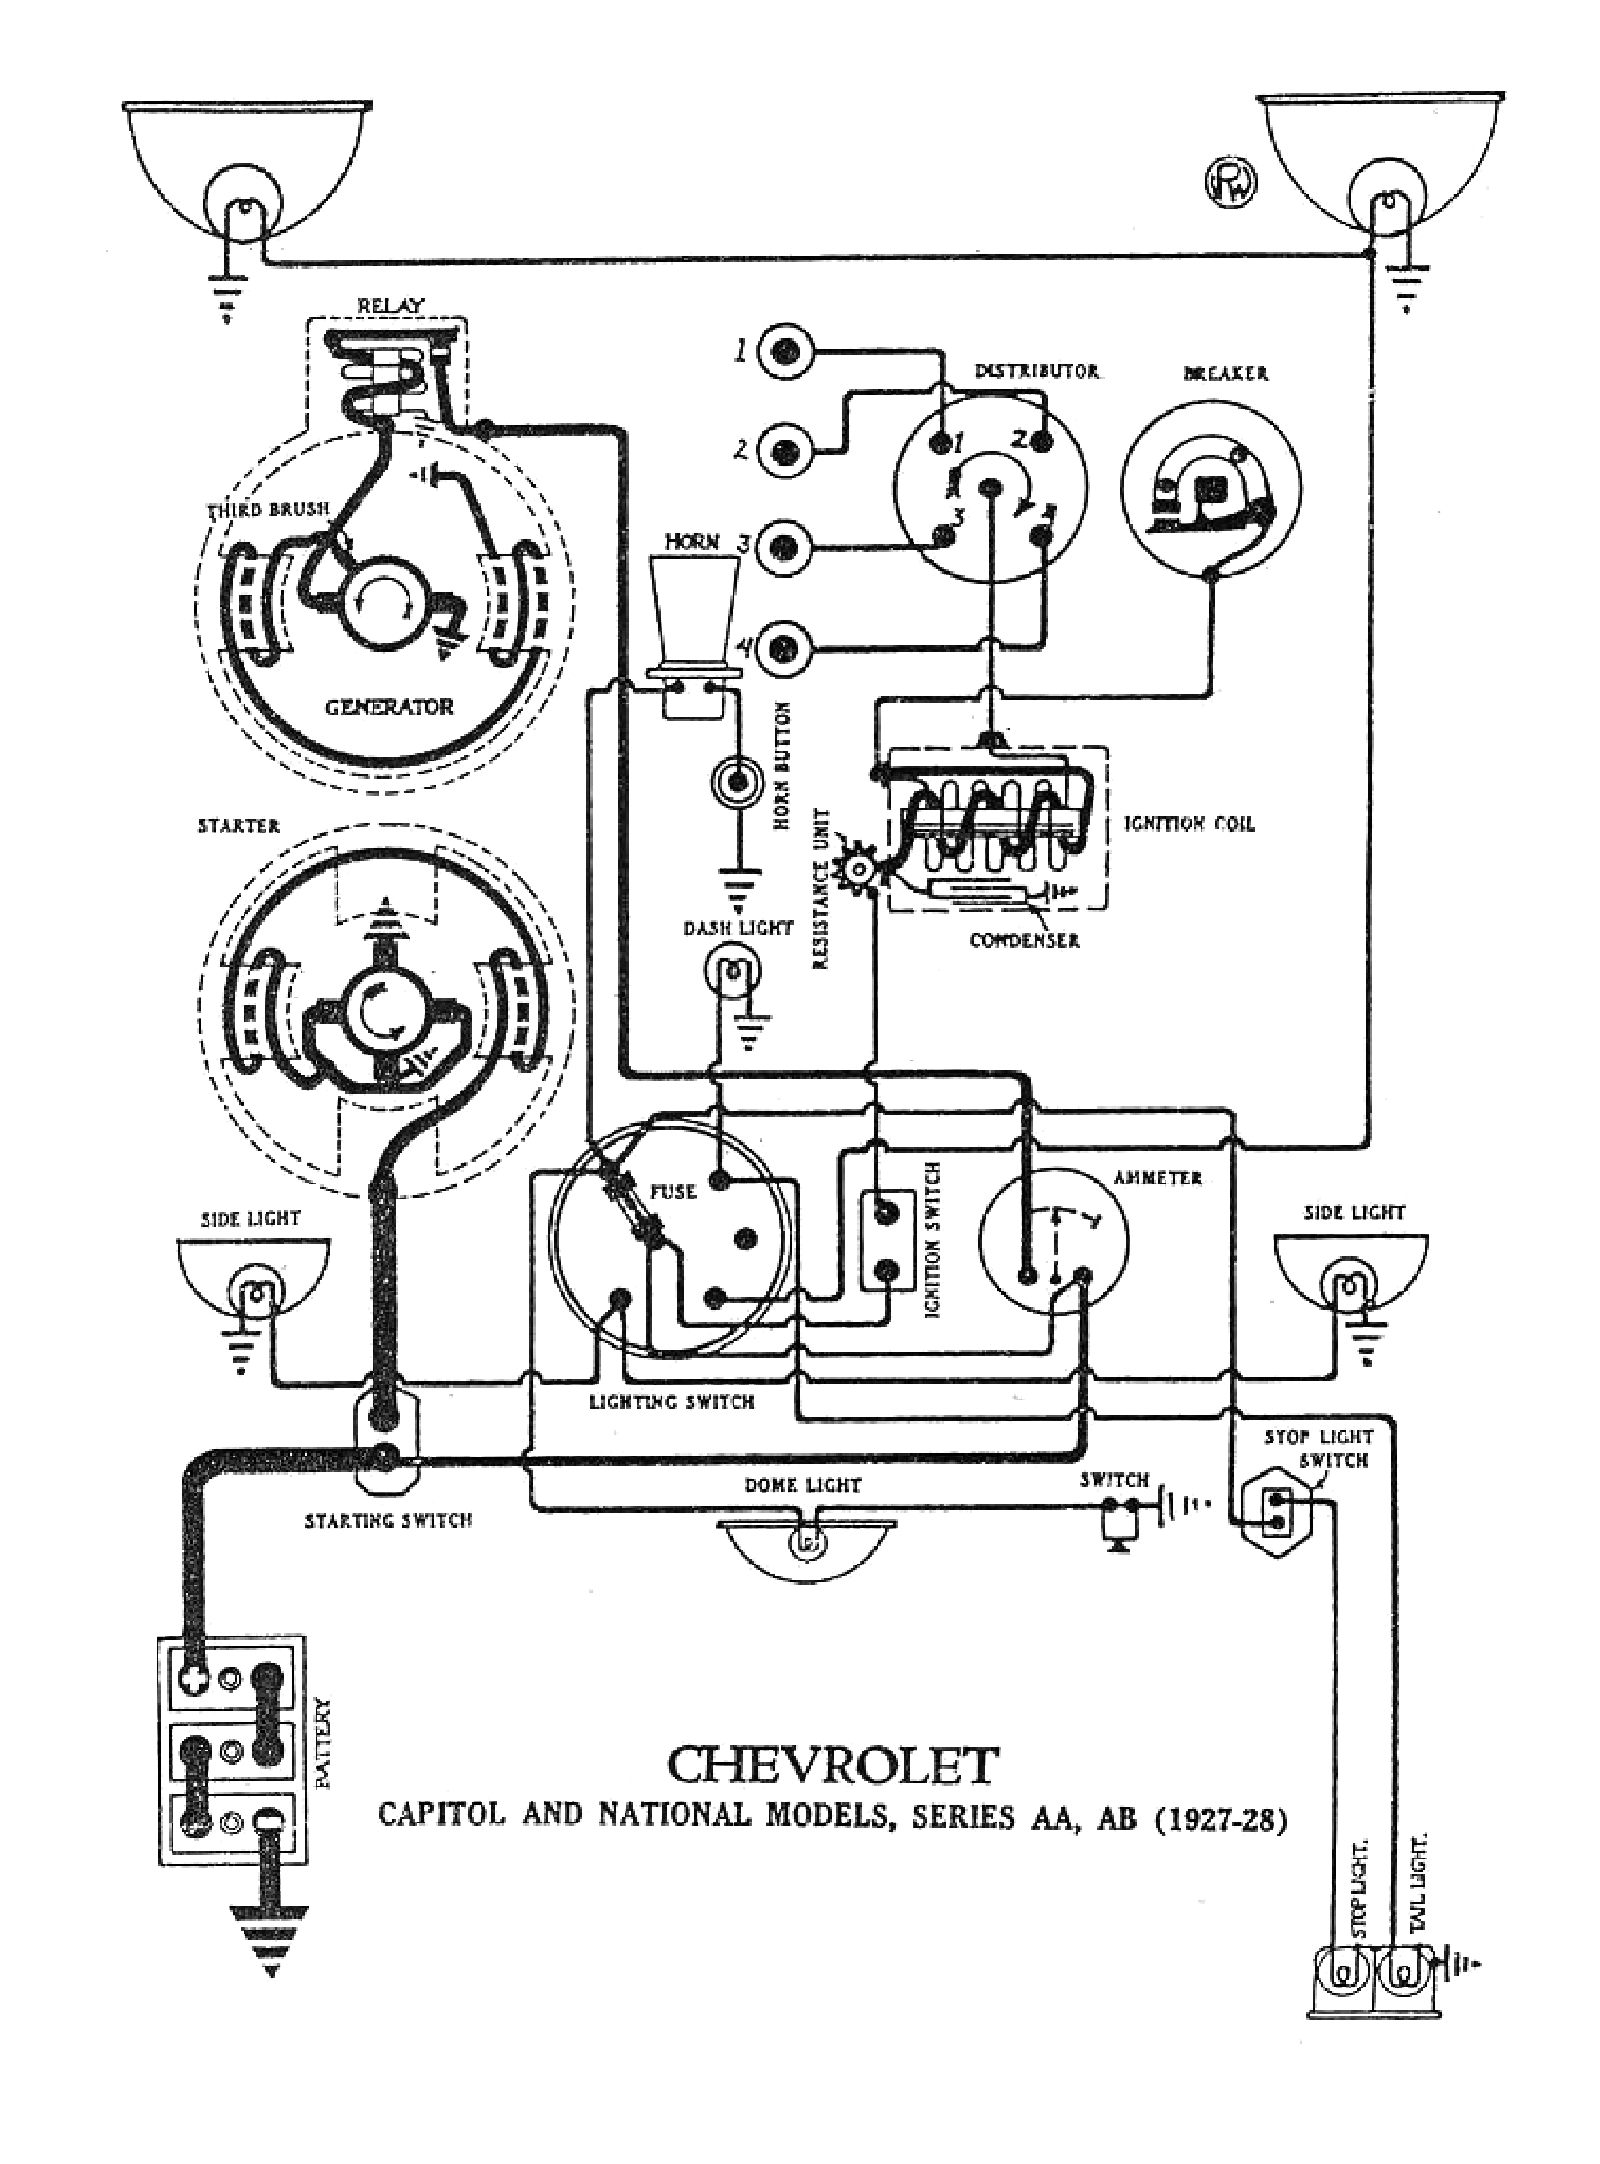 2728wiring chevy wiring diagrams 1928 model a ford wiring diagram at mr168.co